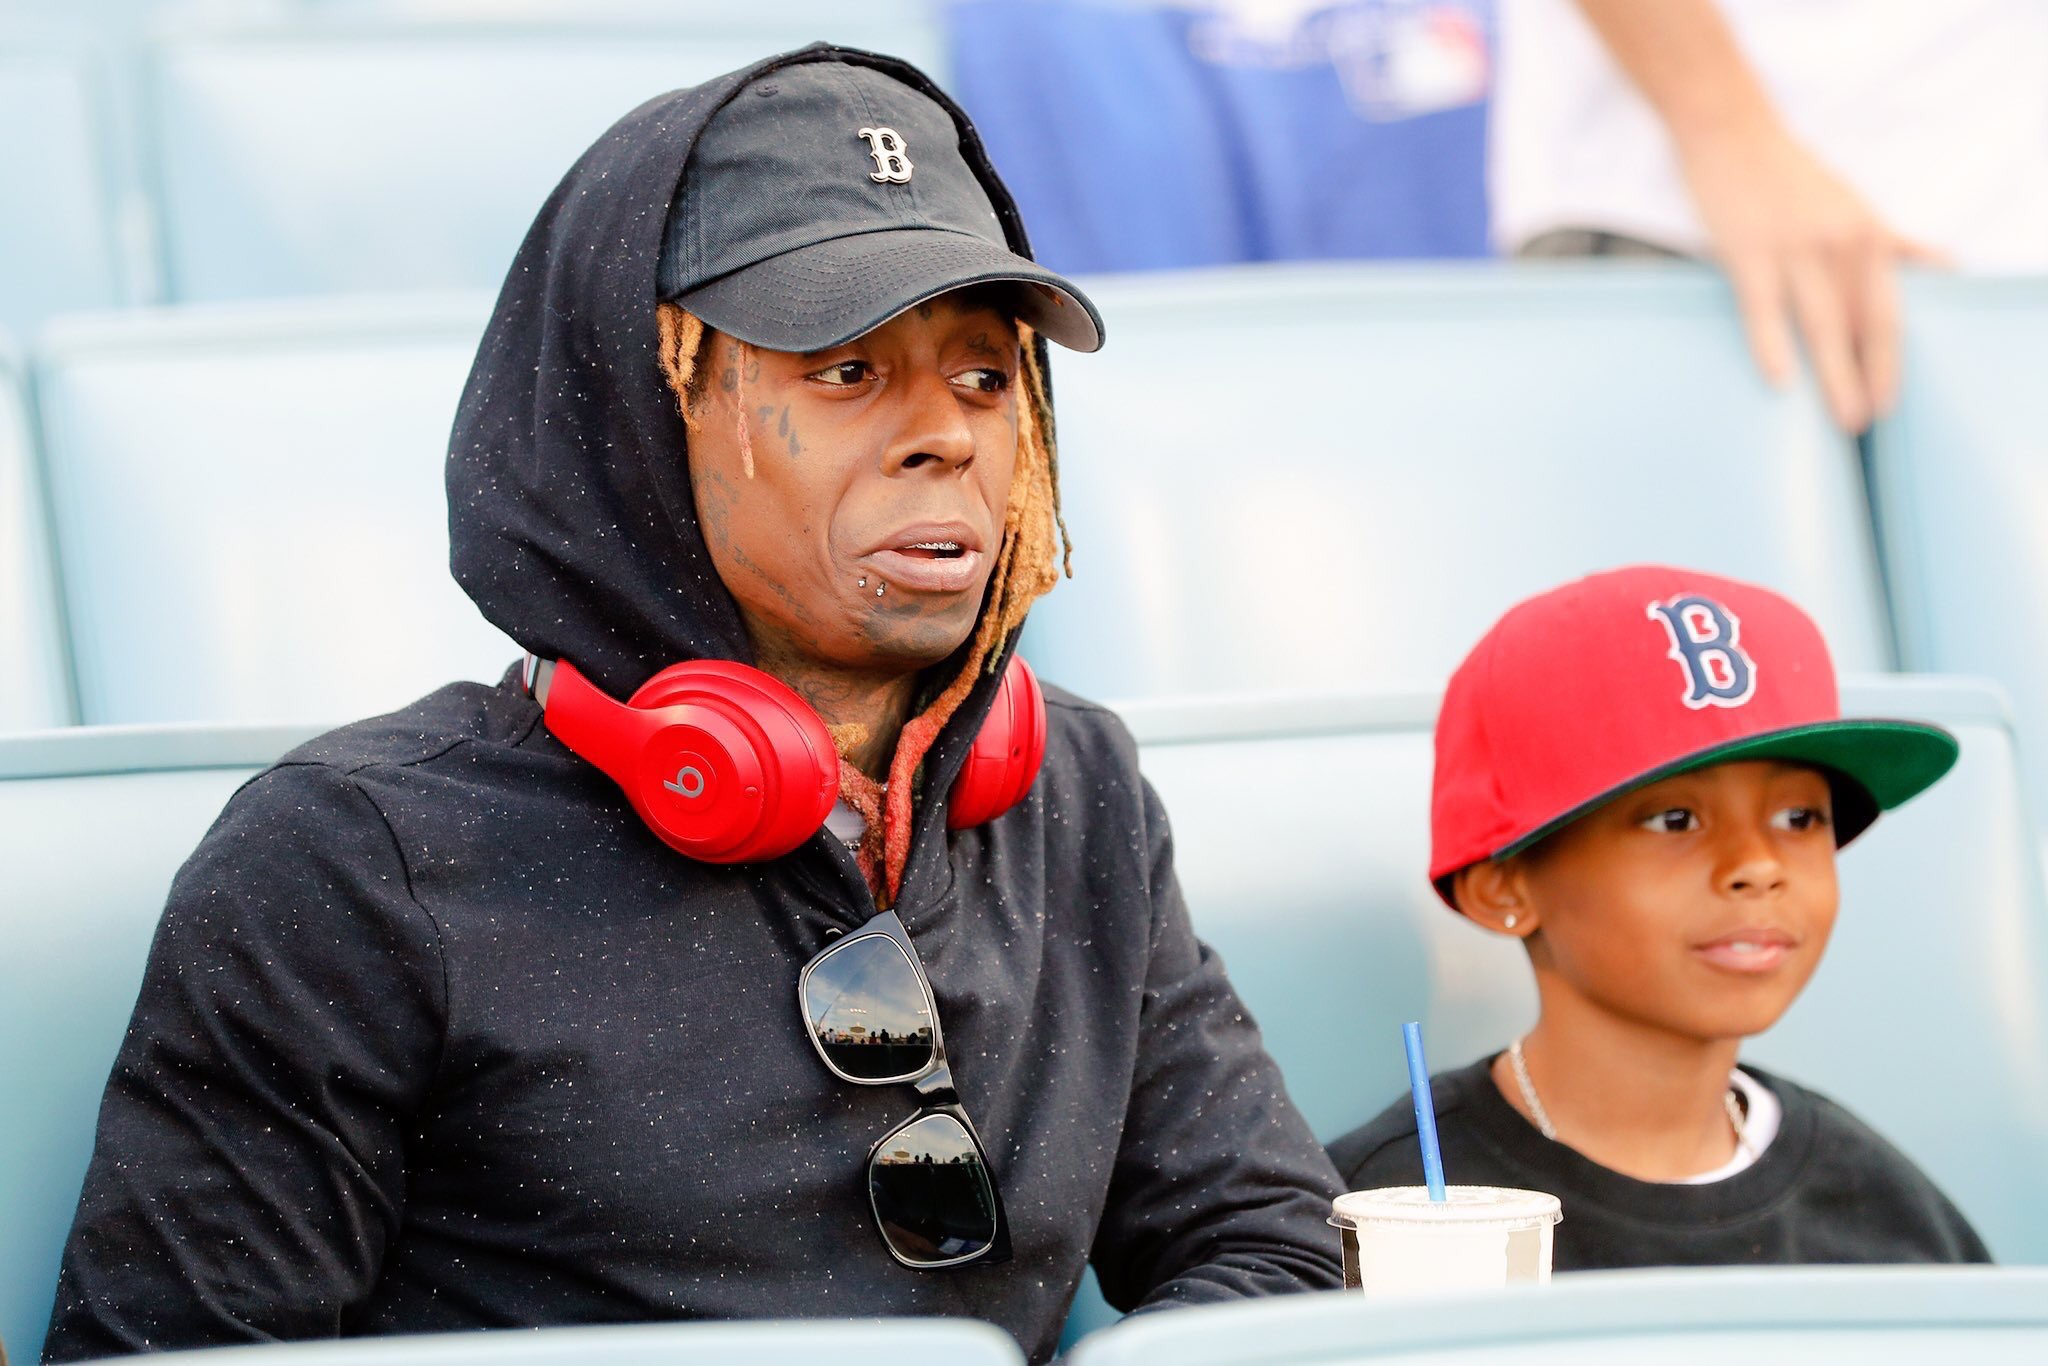 The Red Sox Should Give Lil Wayne An MVP Award For World Series Win